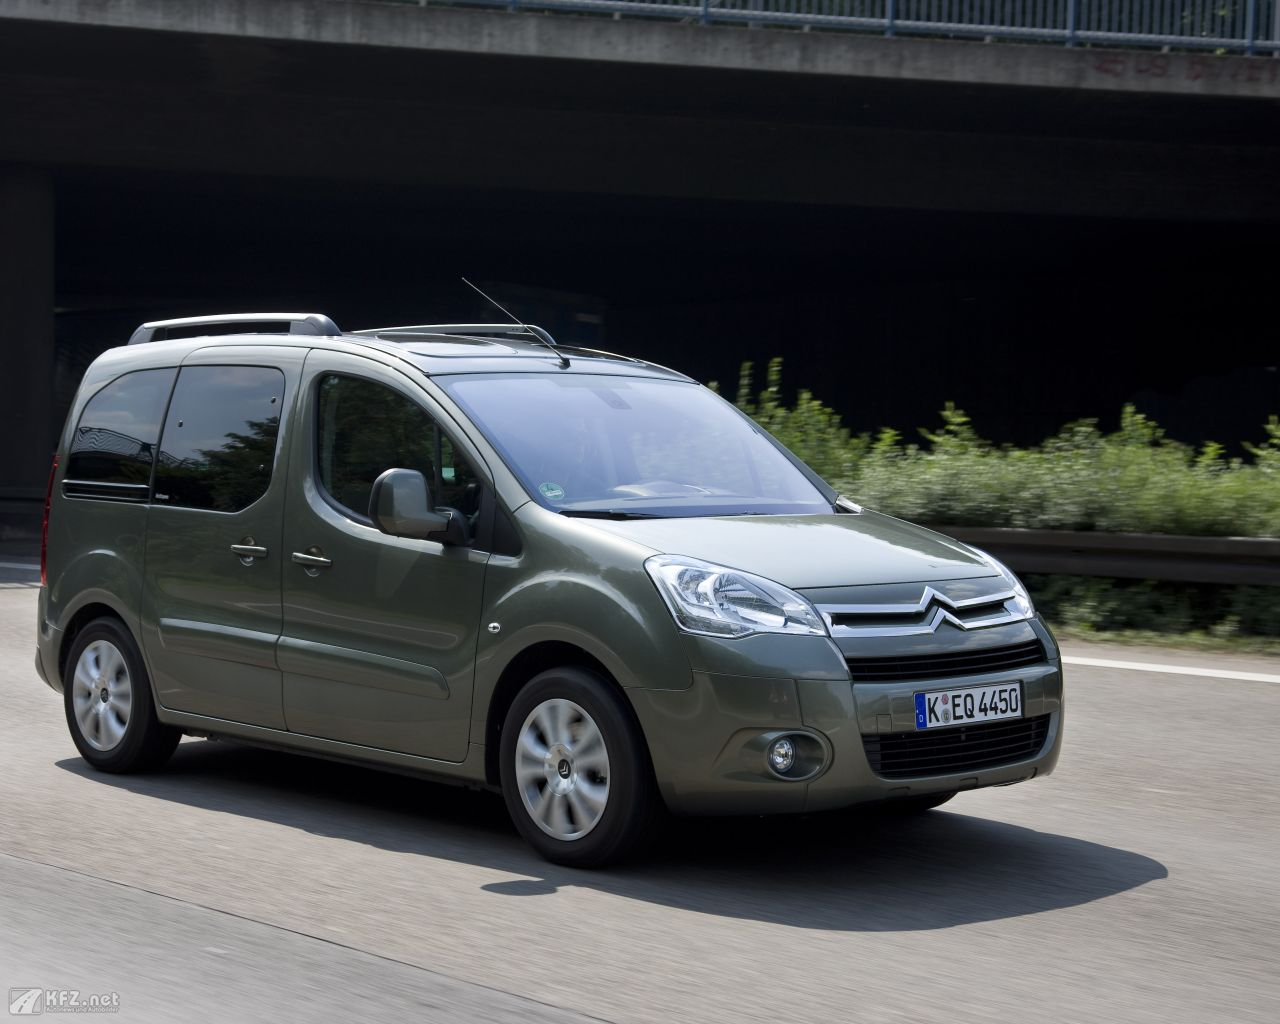 citroen-berlingo-1280x1024-191